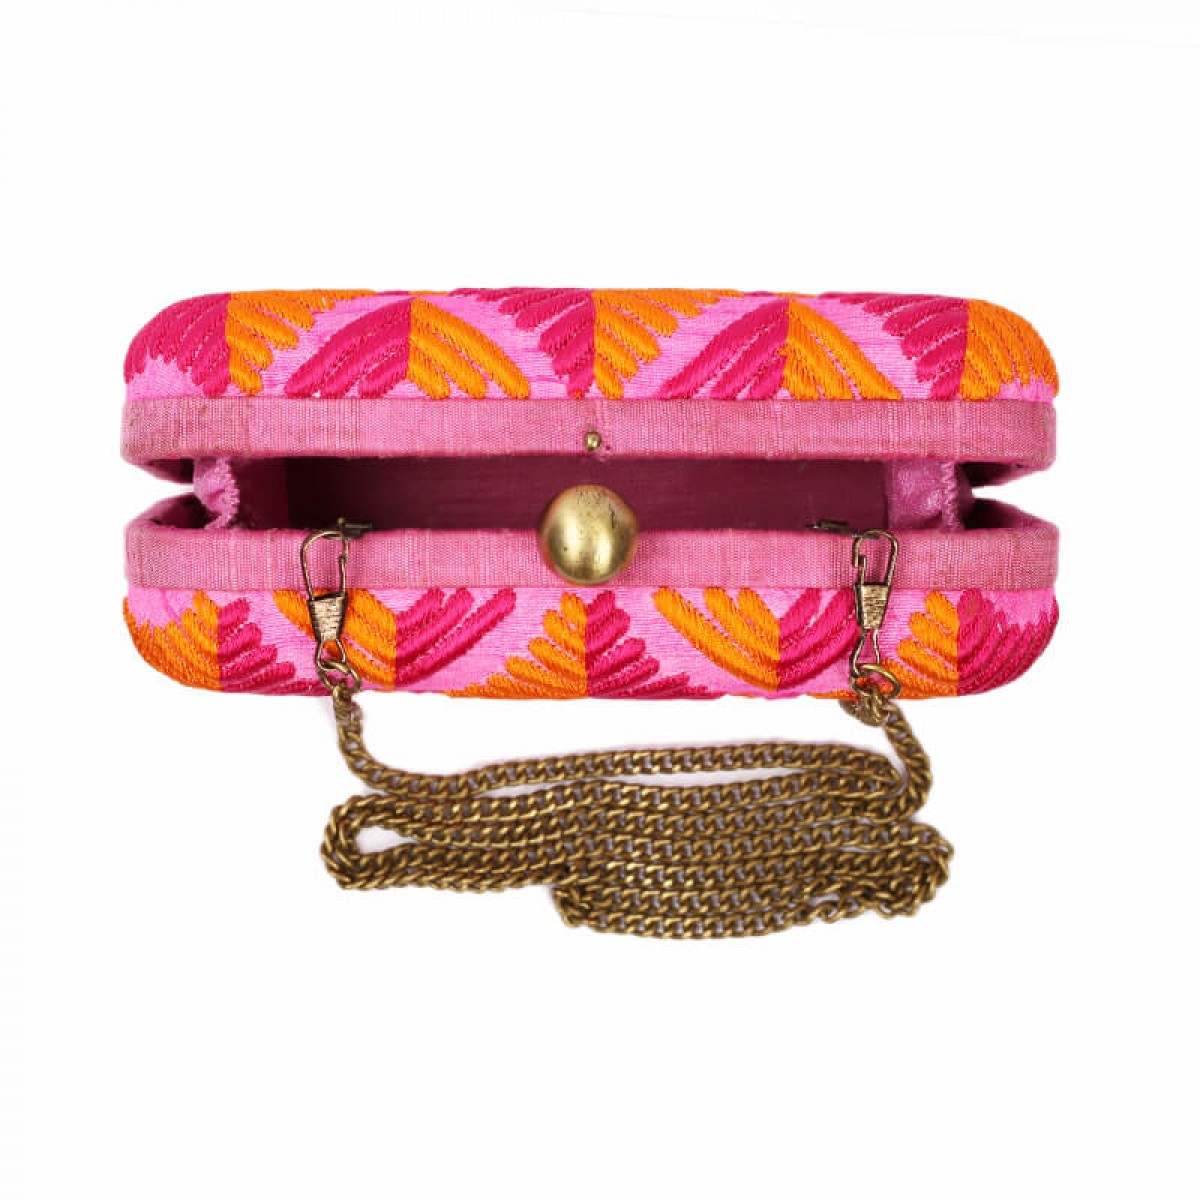 Evening Embroidery Clutch Bag - Pink Fuchsia